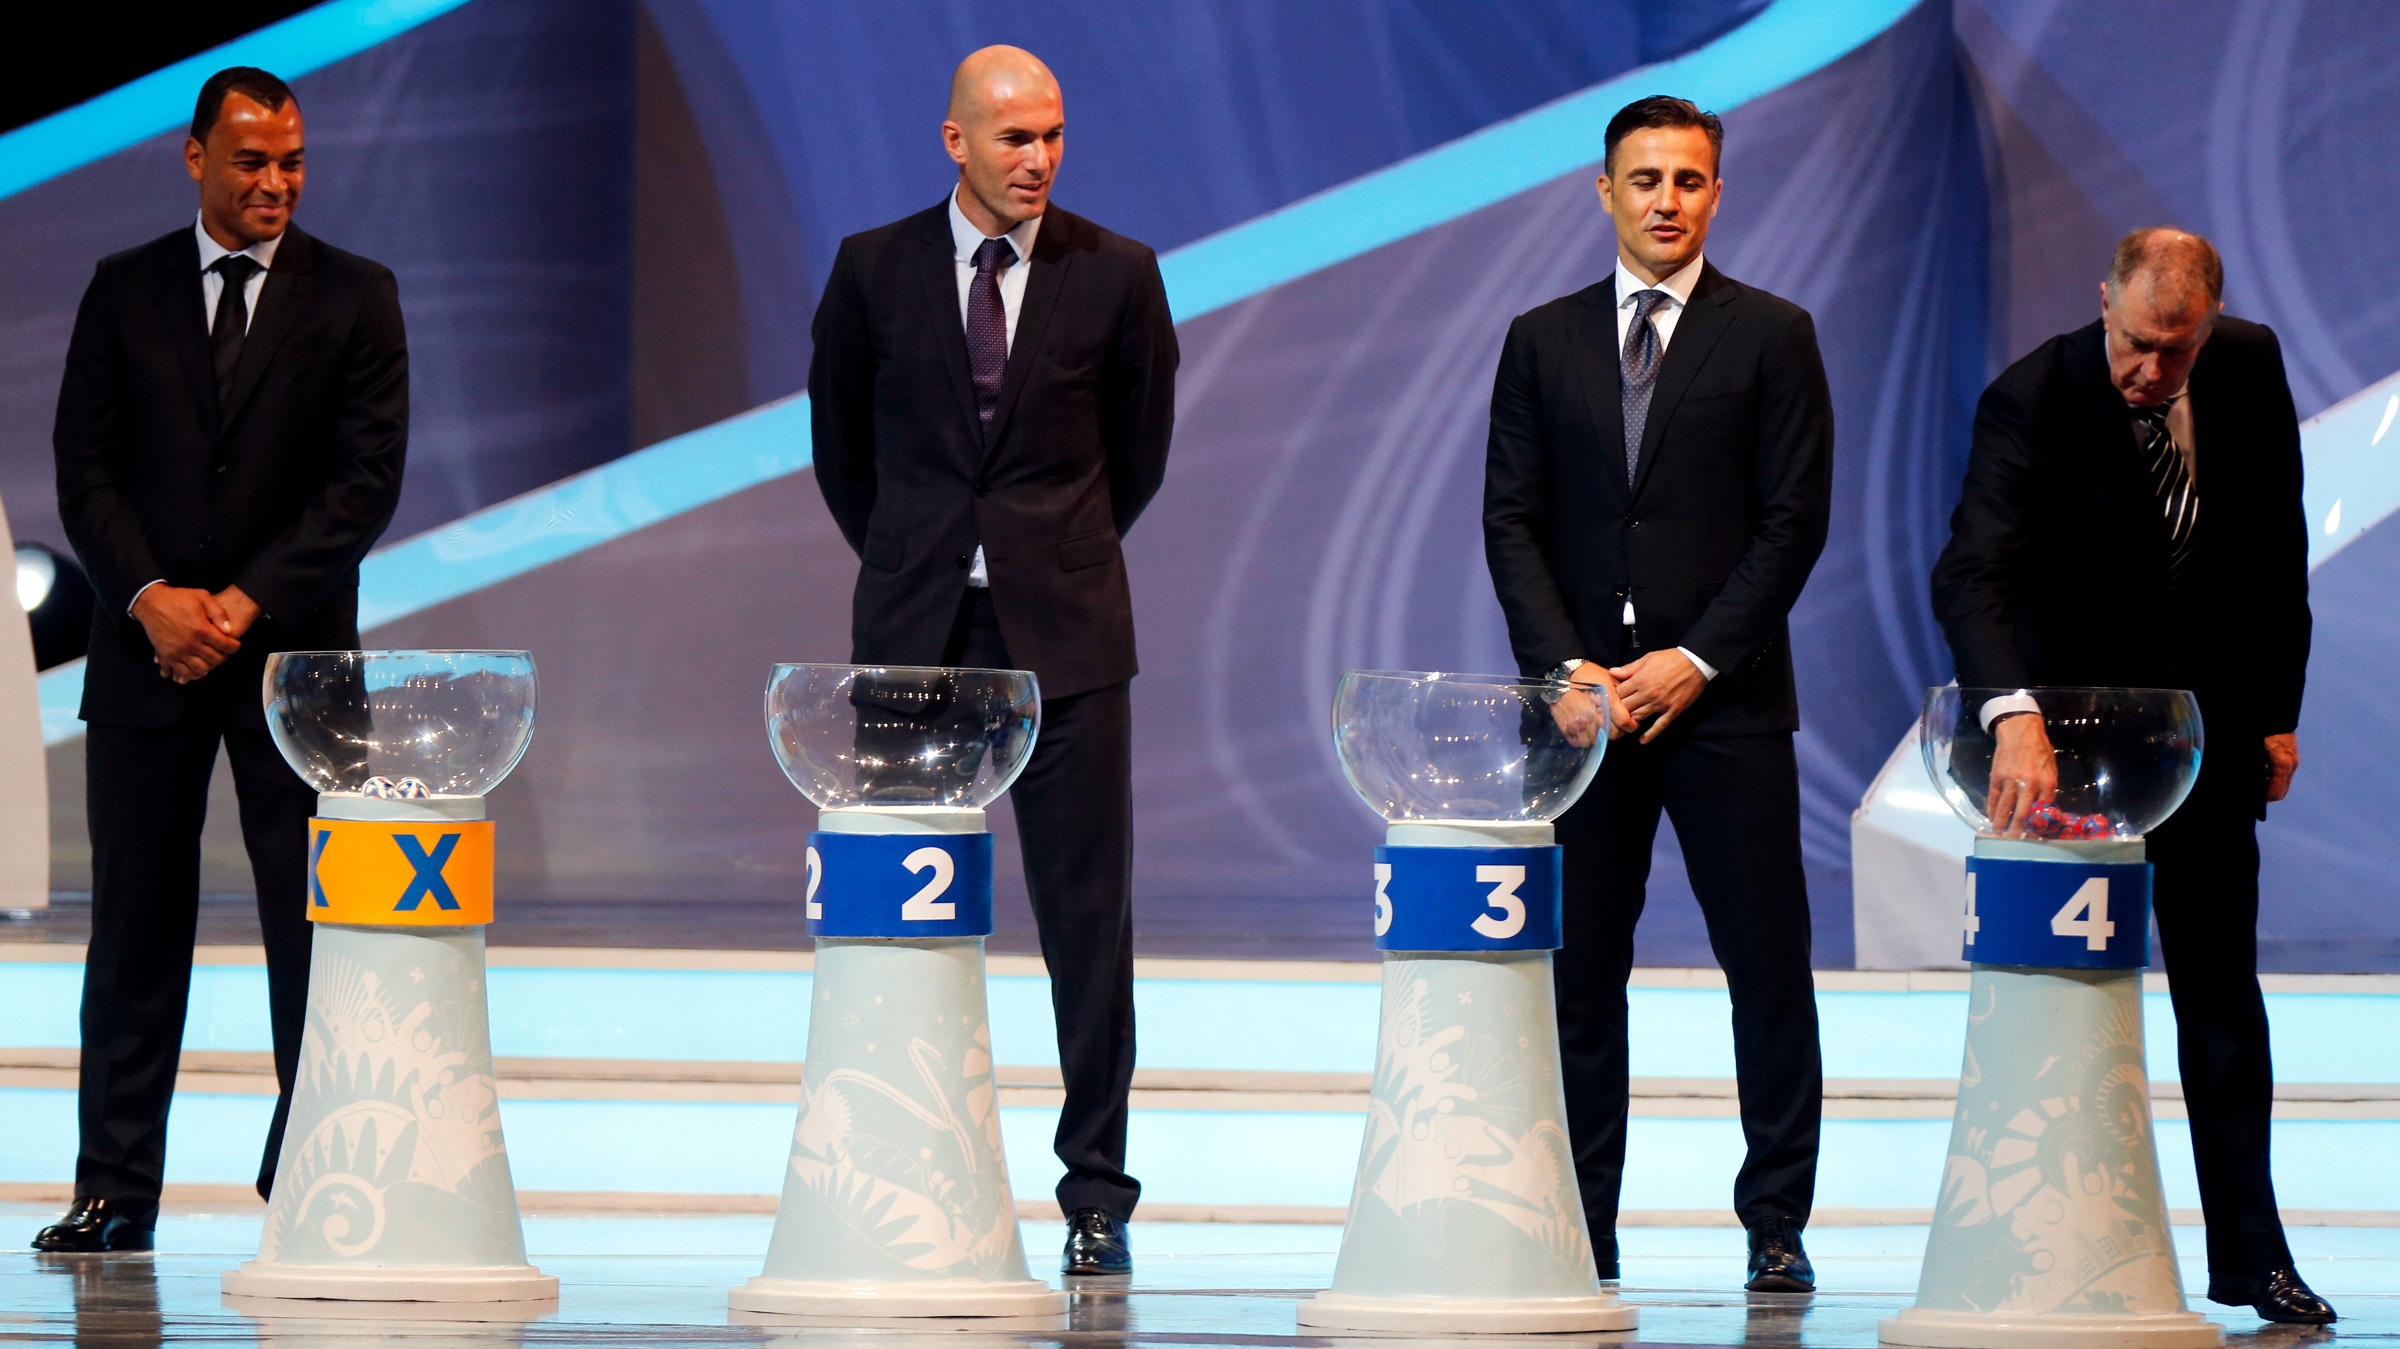 Former England soccer player Geoff Hurst (R) draws a ball from a pot as former Brazil player Cafu (L), former France player Zinedine Zidane (2nd L) and former Italy player Fabio Cannavaro look on during the draw for the 2014 World Cup at the Costa do Sauipe resort in Sao Joao da Mata, Bahia state, December 6, 2013. The 2014 World Cup finals will be held in Brazil from June 12 through July 13.